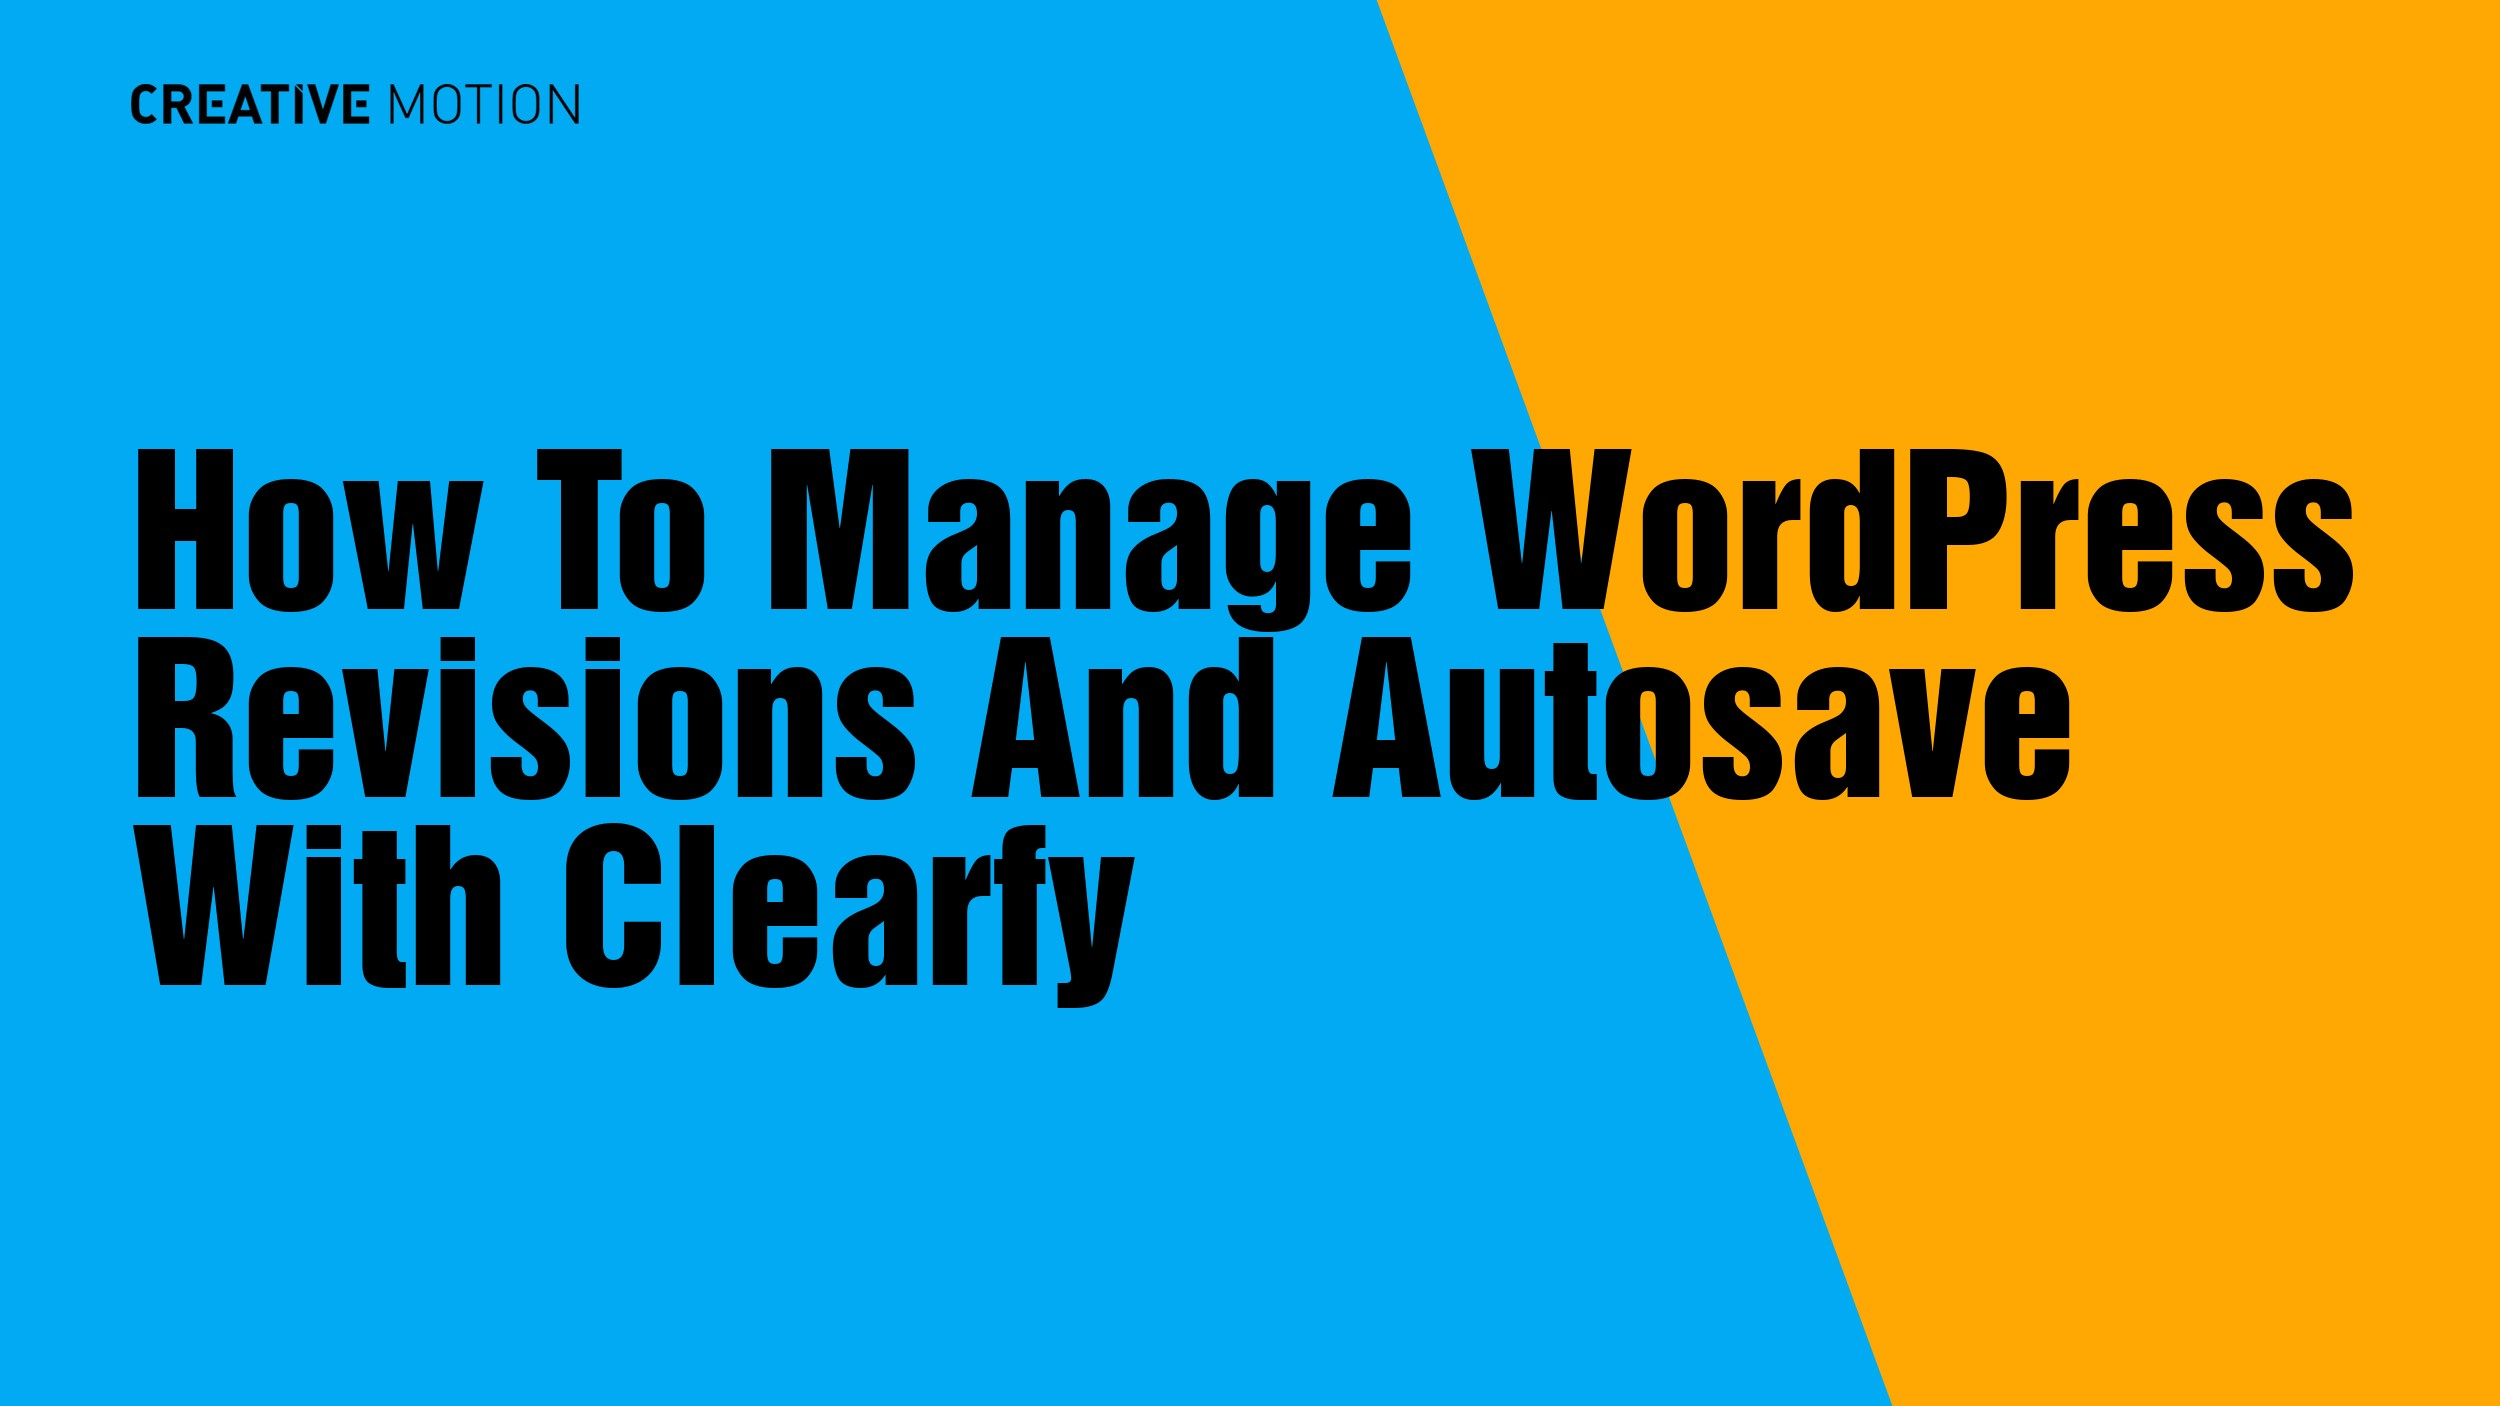 How To Manage WordPress Revisions And Autosave With Clearfy